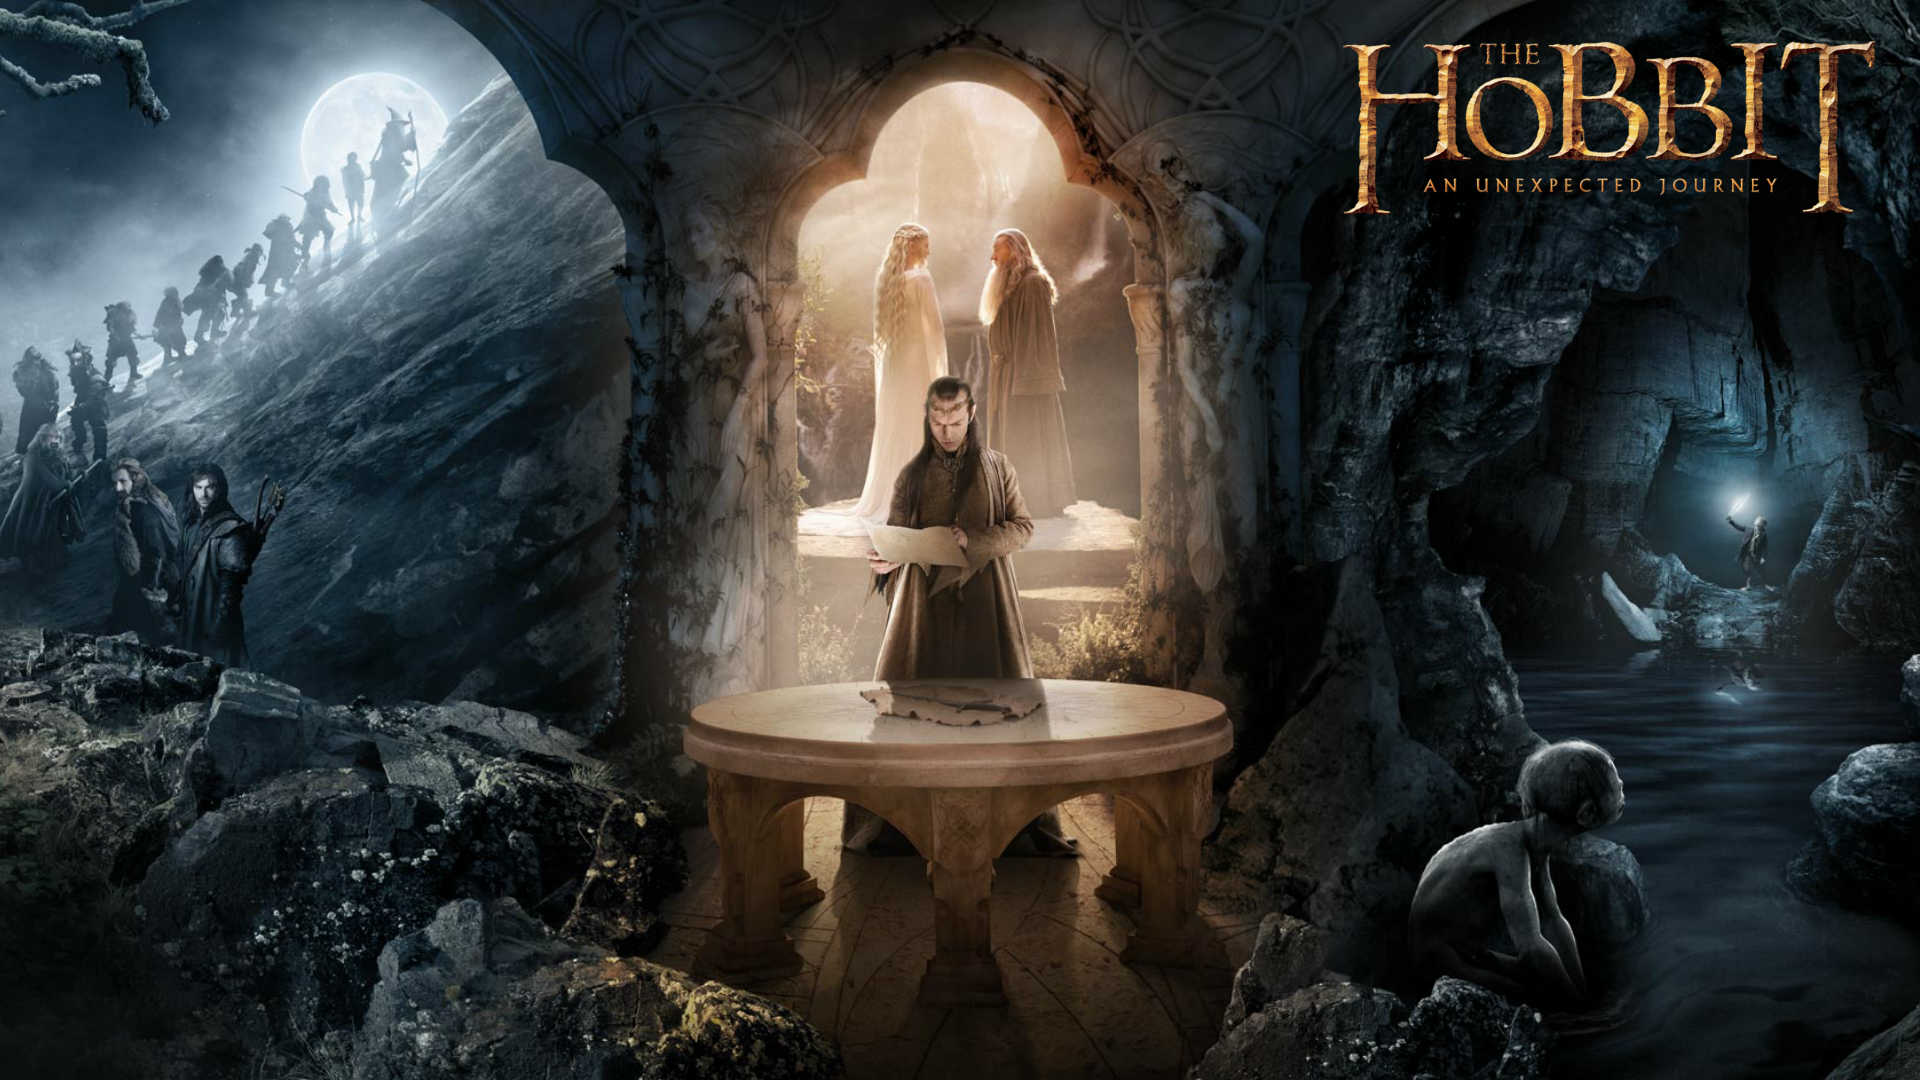 Hobbit Part 1 - An Unexpected Journey 5